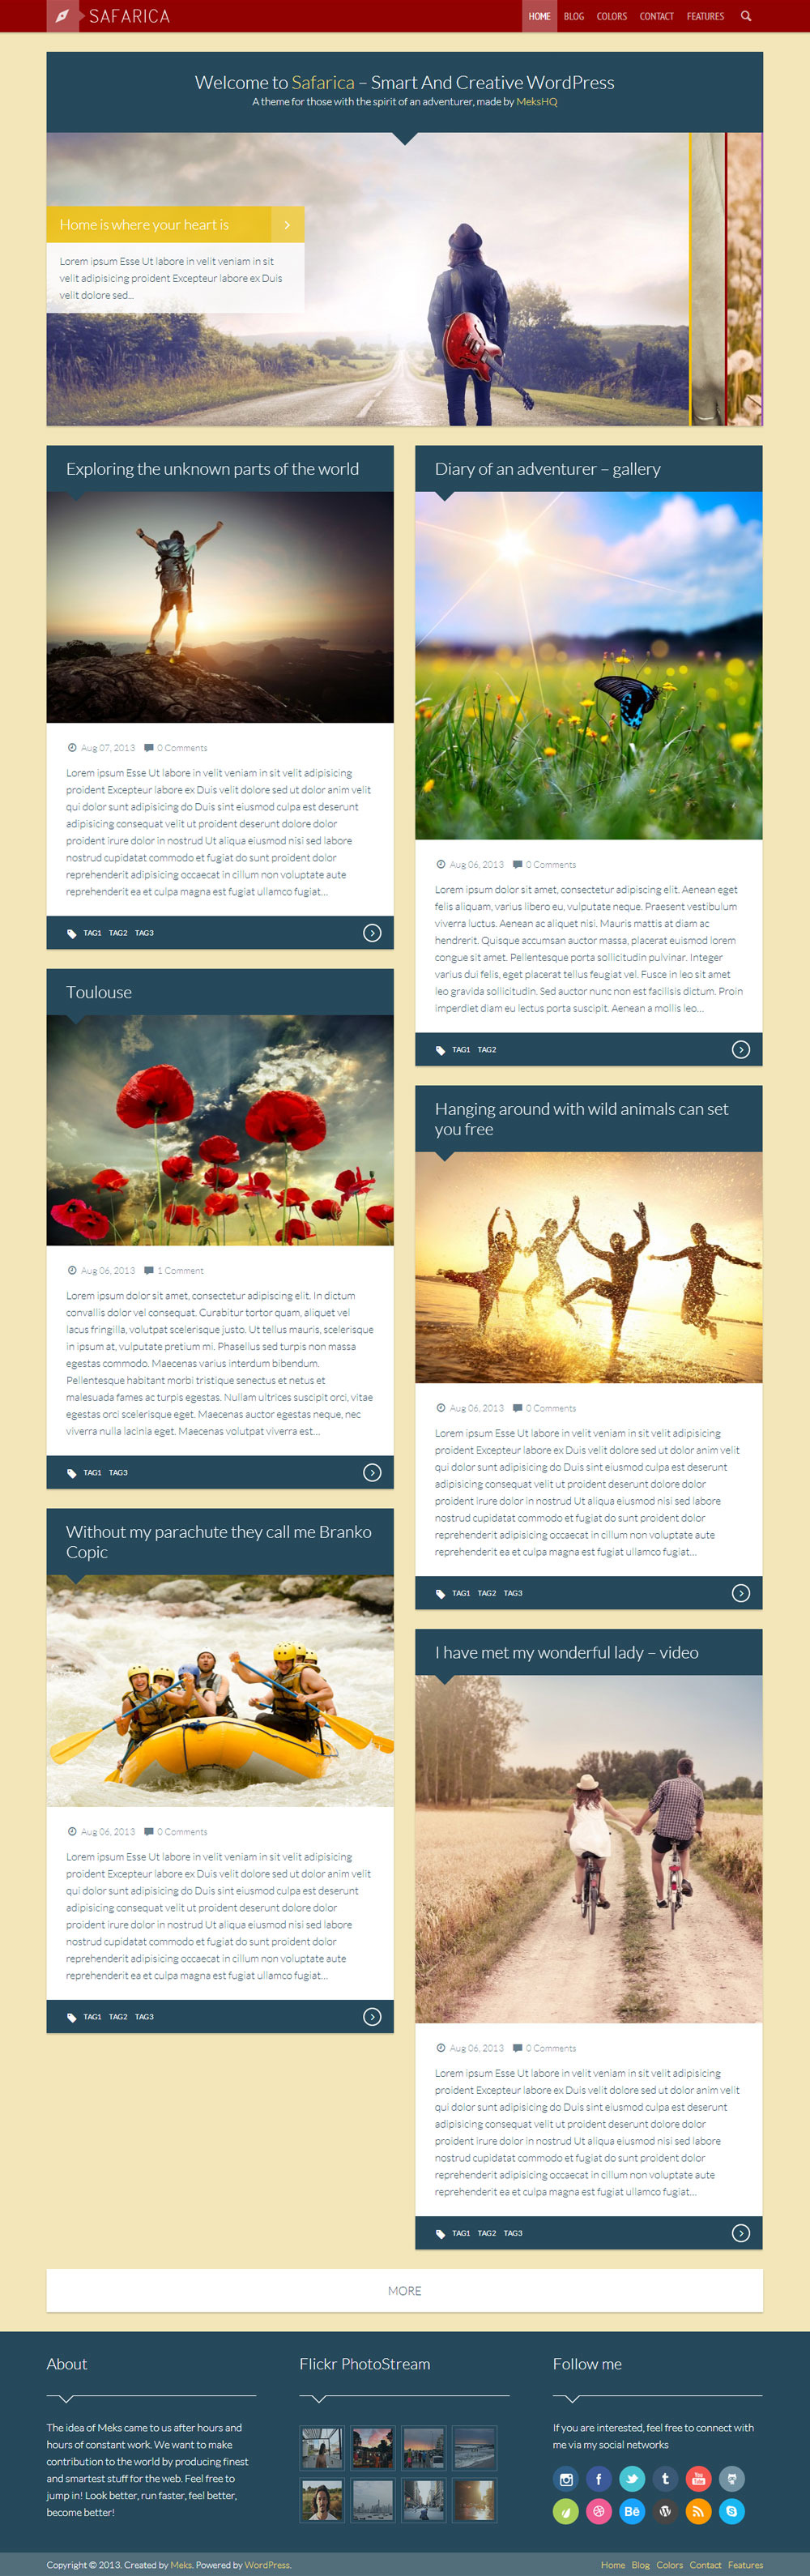 Safarica - Smart And Creative WordPress Blog Theme